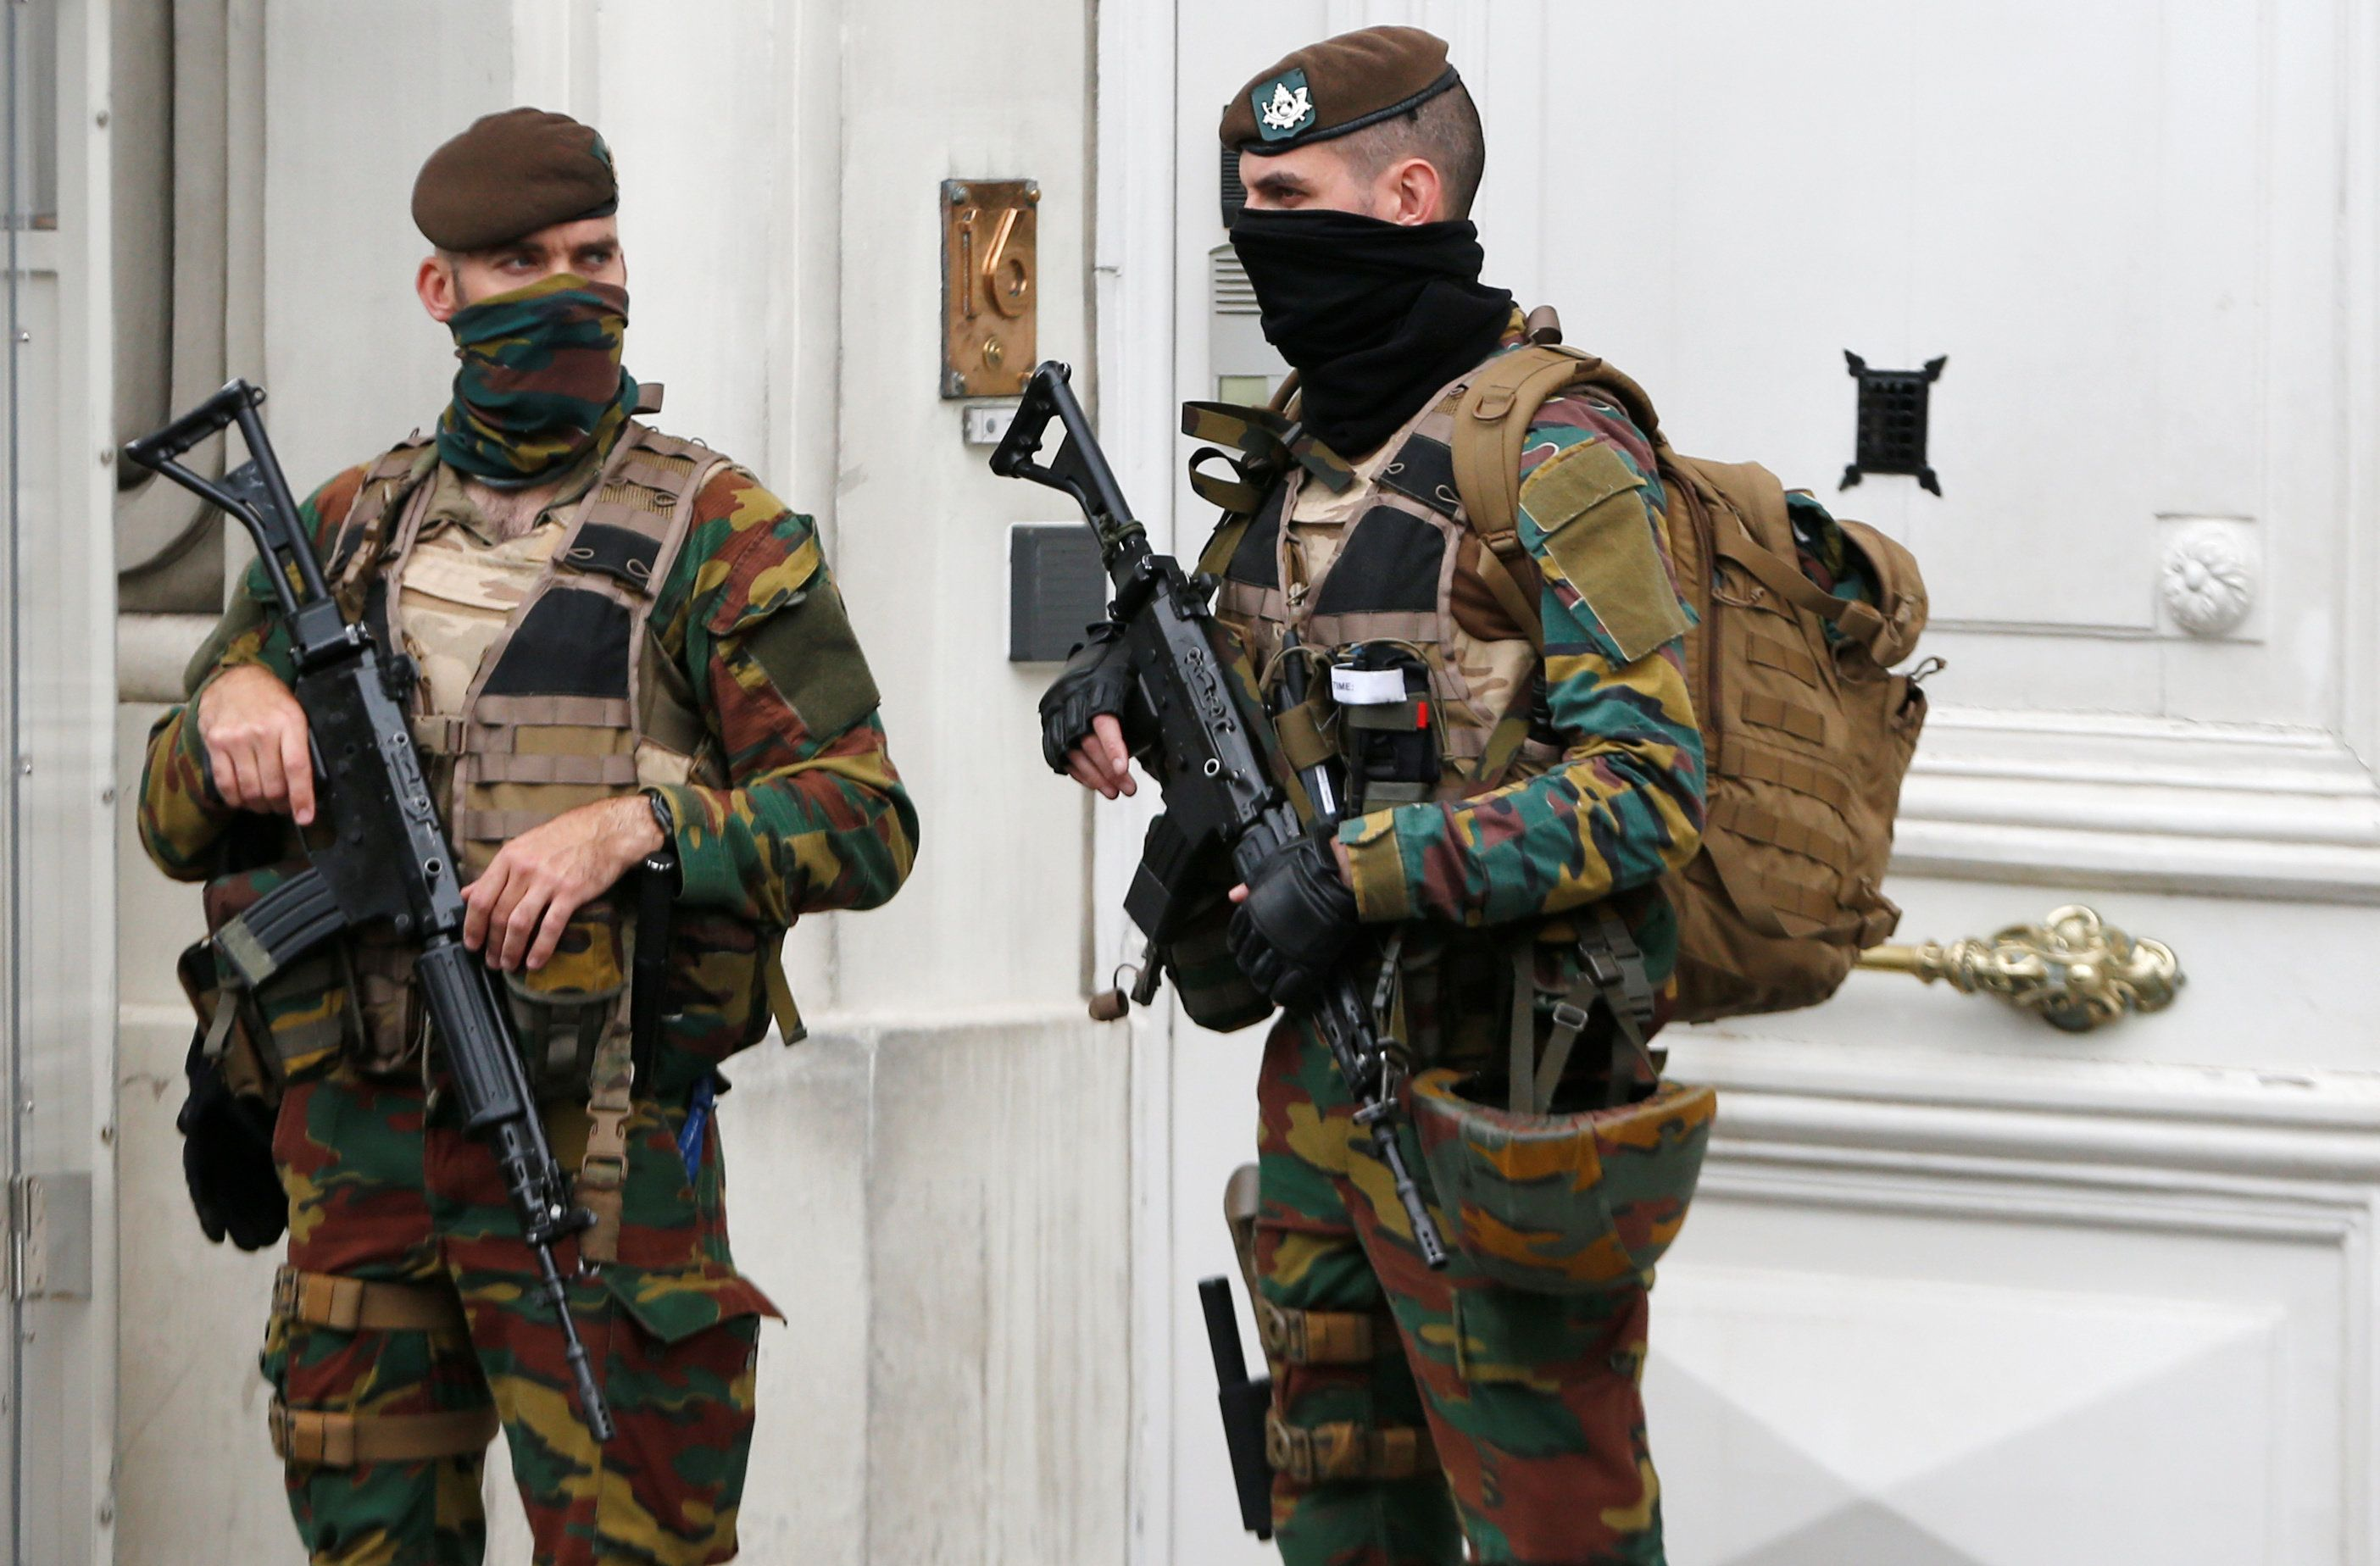 Belgian police arrested 12 suspects in a major anti-terror operation overnight. Above, Belgian soldiers...